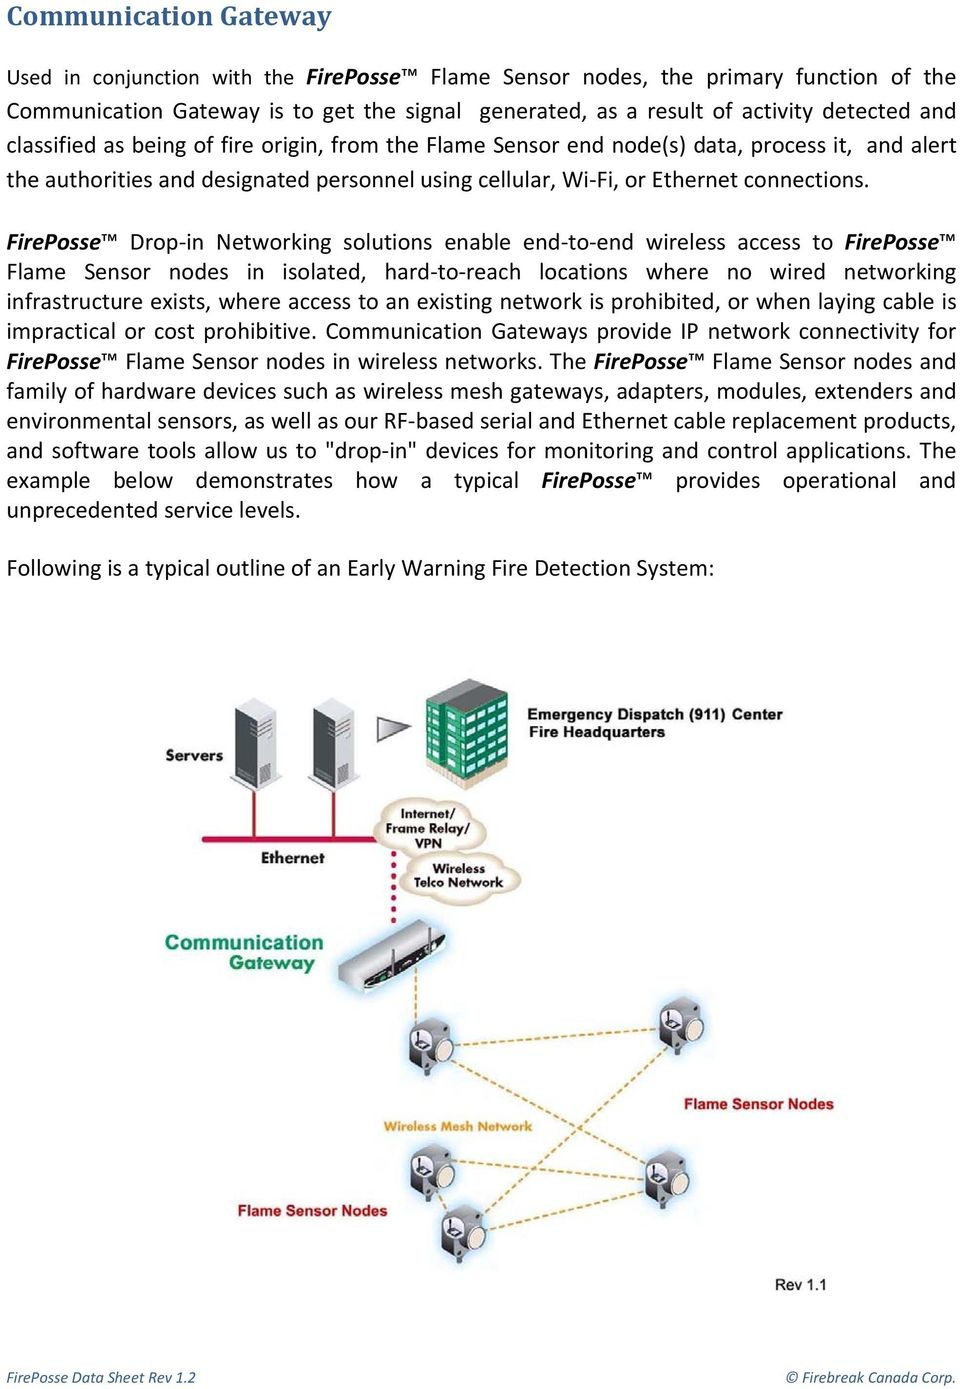 FirePosse Drop in Networking solutions enable end to end wireless access to FirePosse Flame Sensor nodes in isolated, hard to reach locations where no wired networking infrastructure exists, where